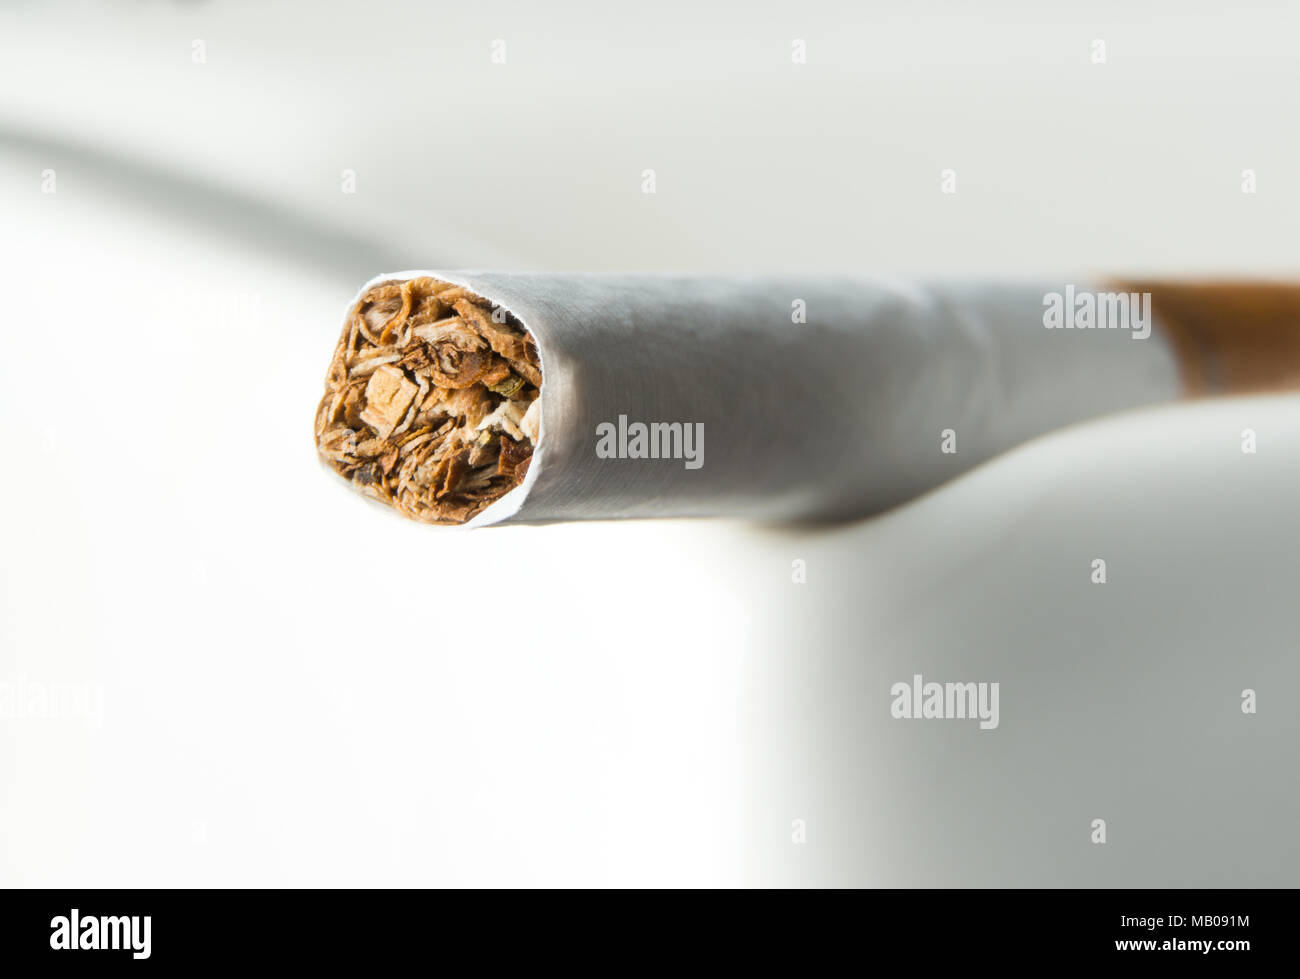 Close up of the tobacco inside a cigarette - Stock Image